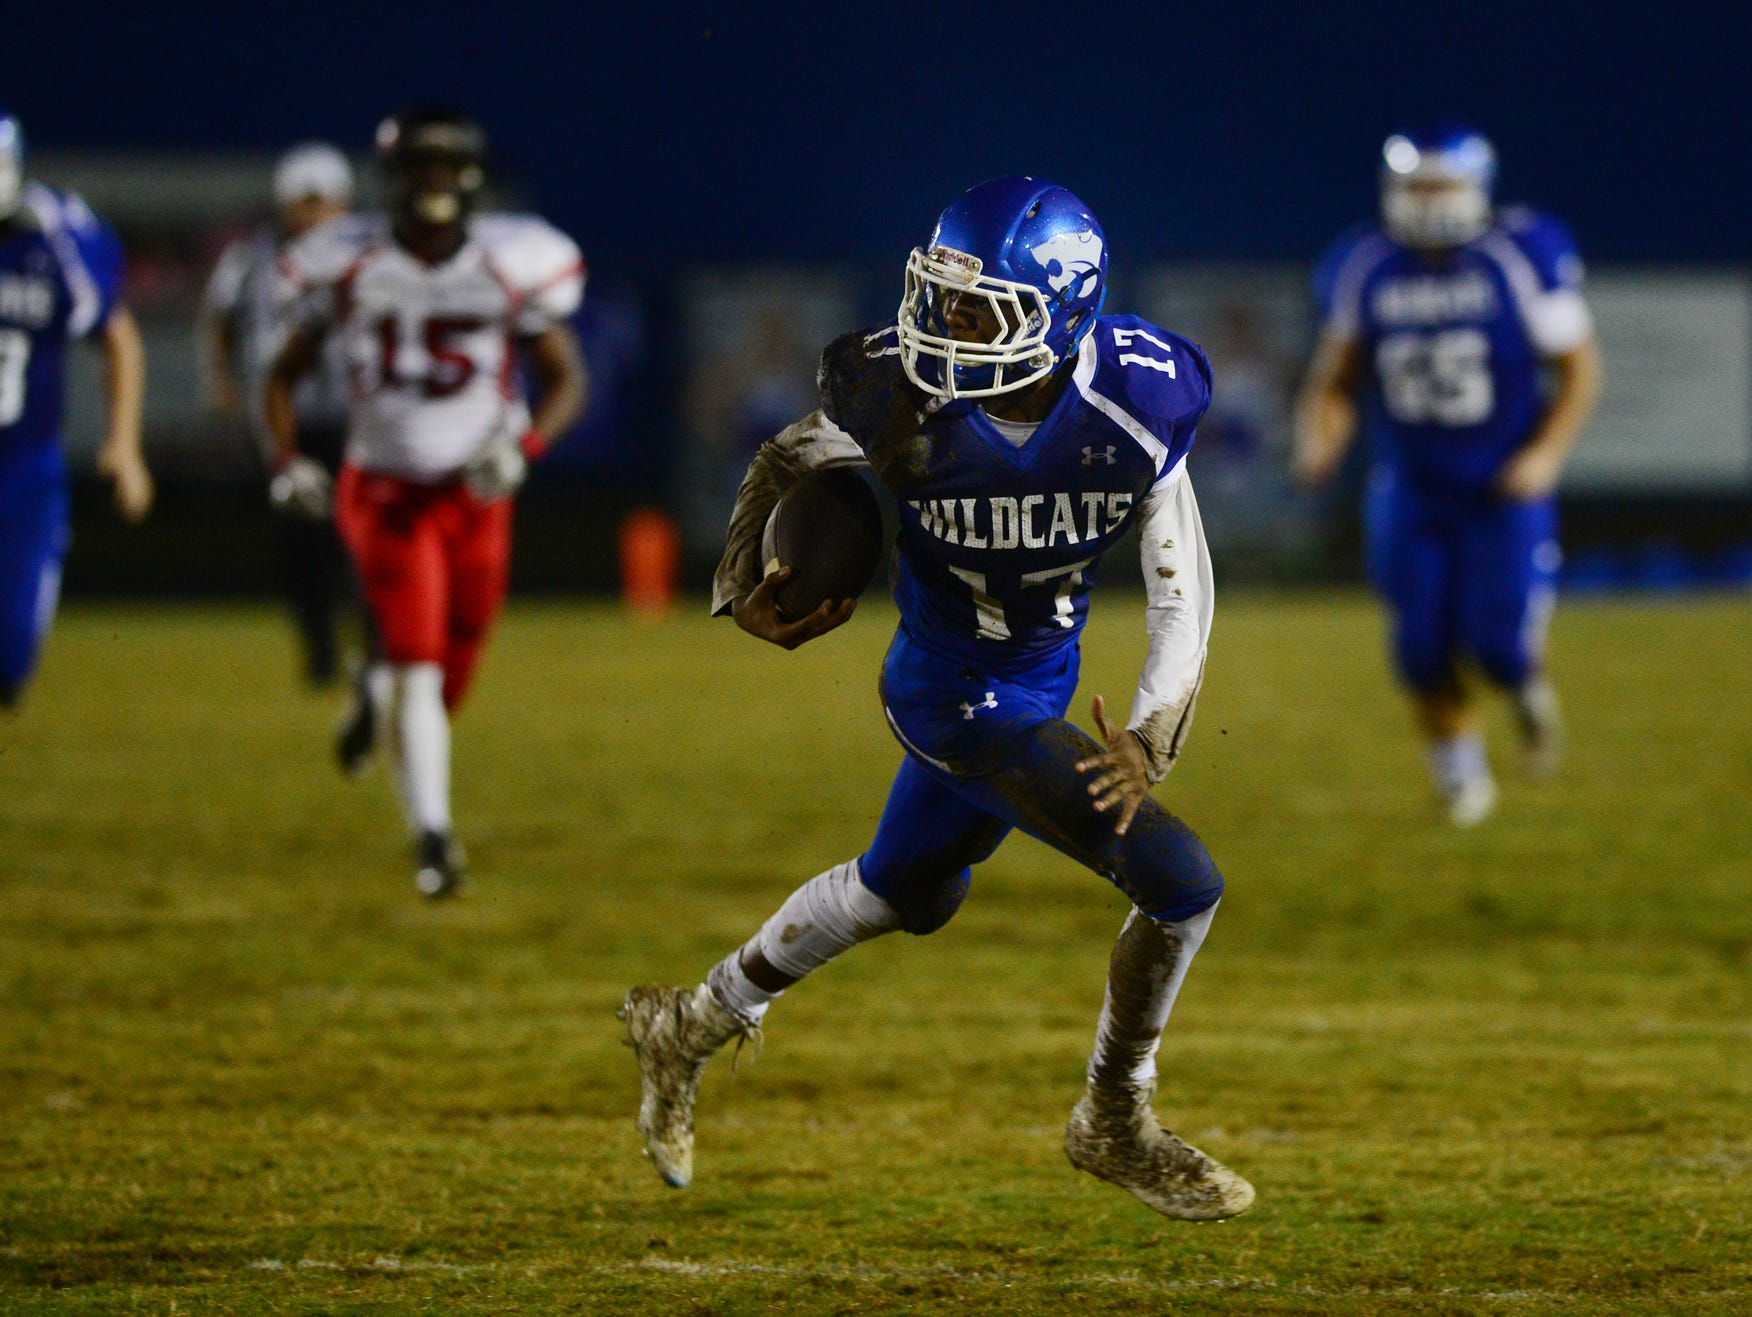 Woodmont High Keyshun Kilgore (17) attempts to run past Hillcrest defense at Whitt Memorial Field on Friday.